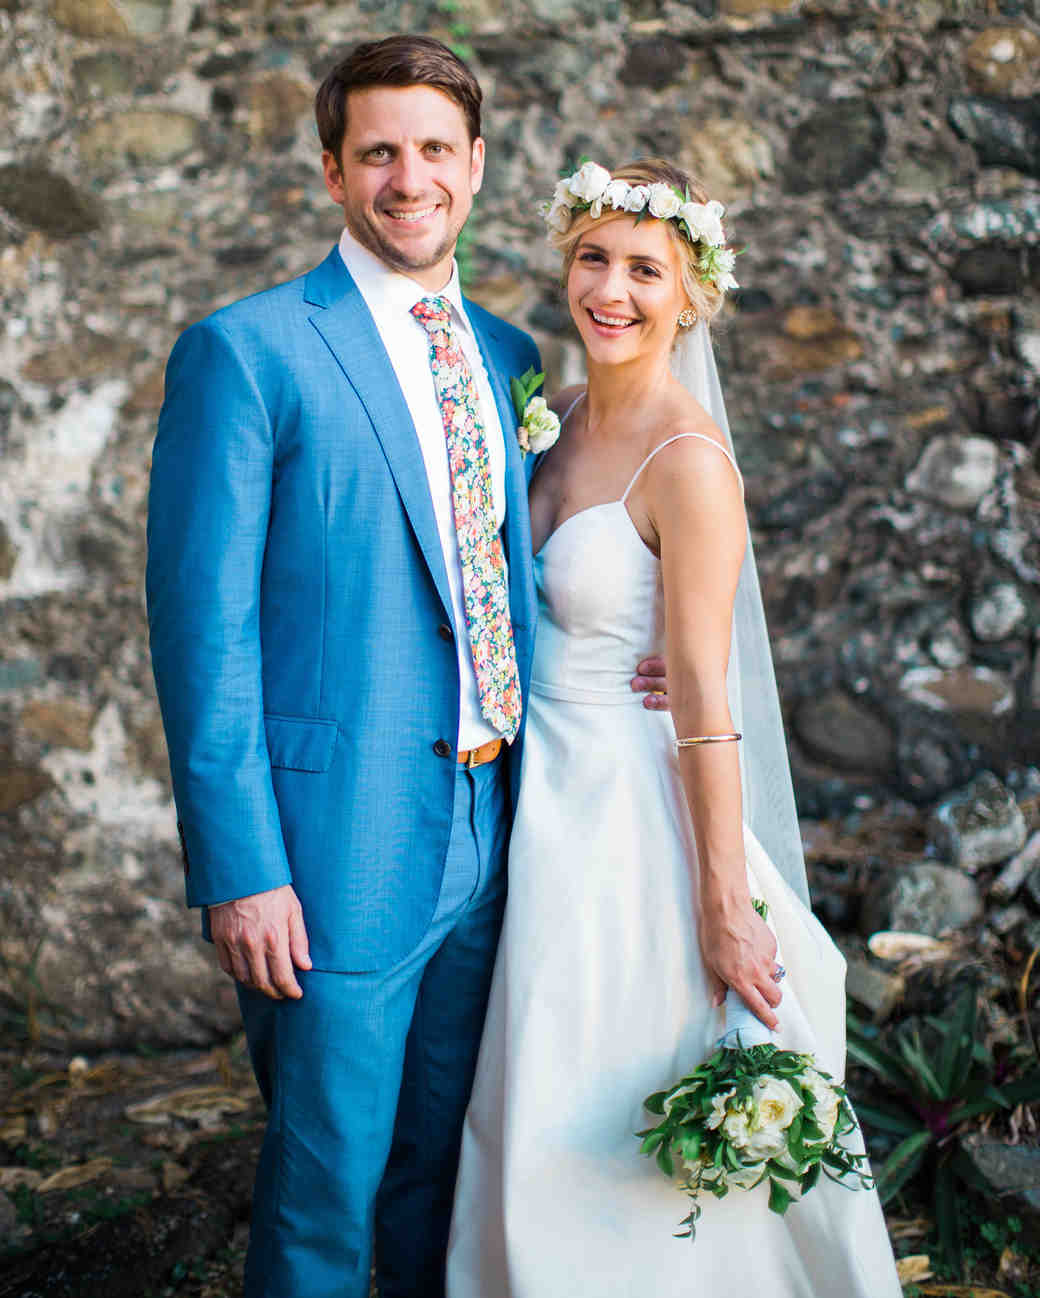 26 Nontraditional Looks for the Fashion-Forward Groom | Martha ...